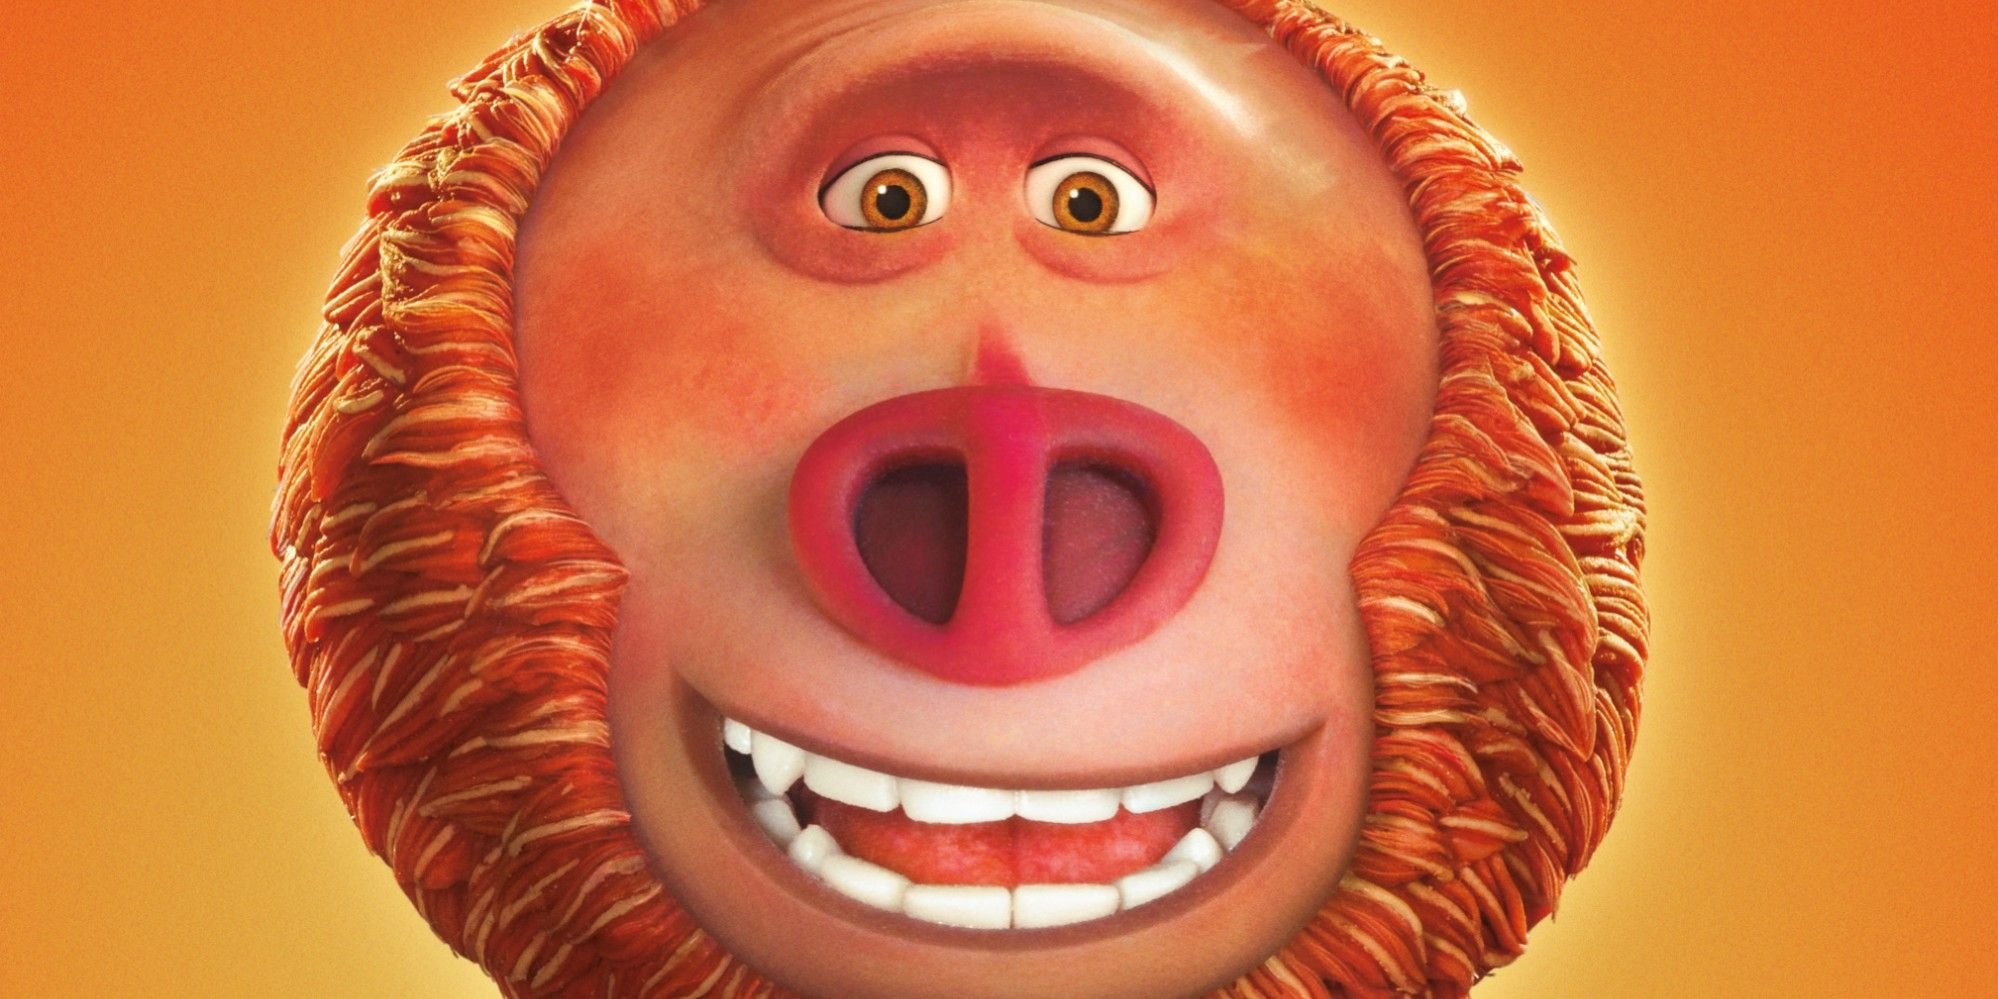 Movie Poster 2019: Missing Link Trailer #2: Laika's New Movie Is A Buddy